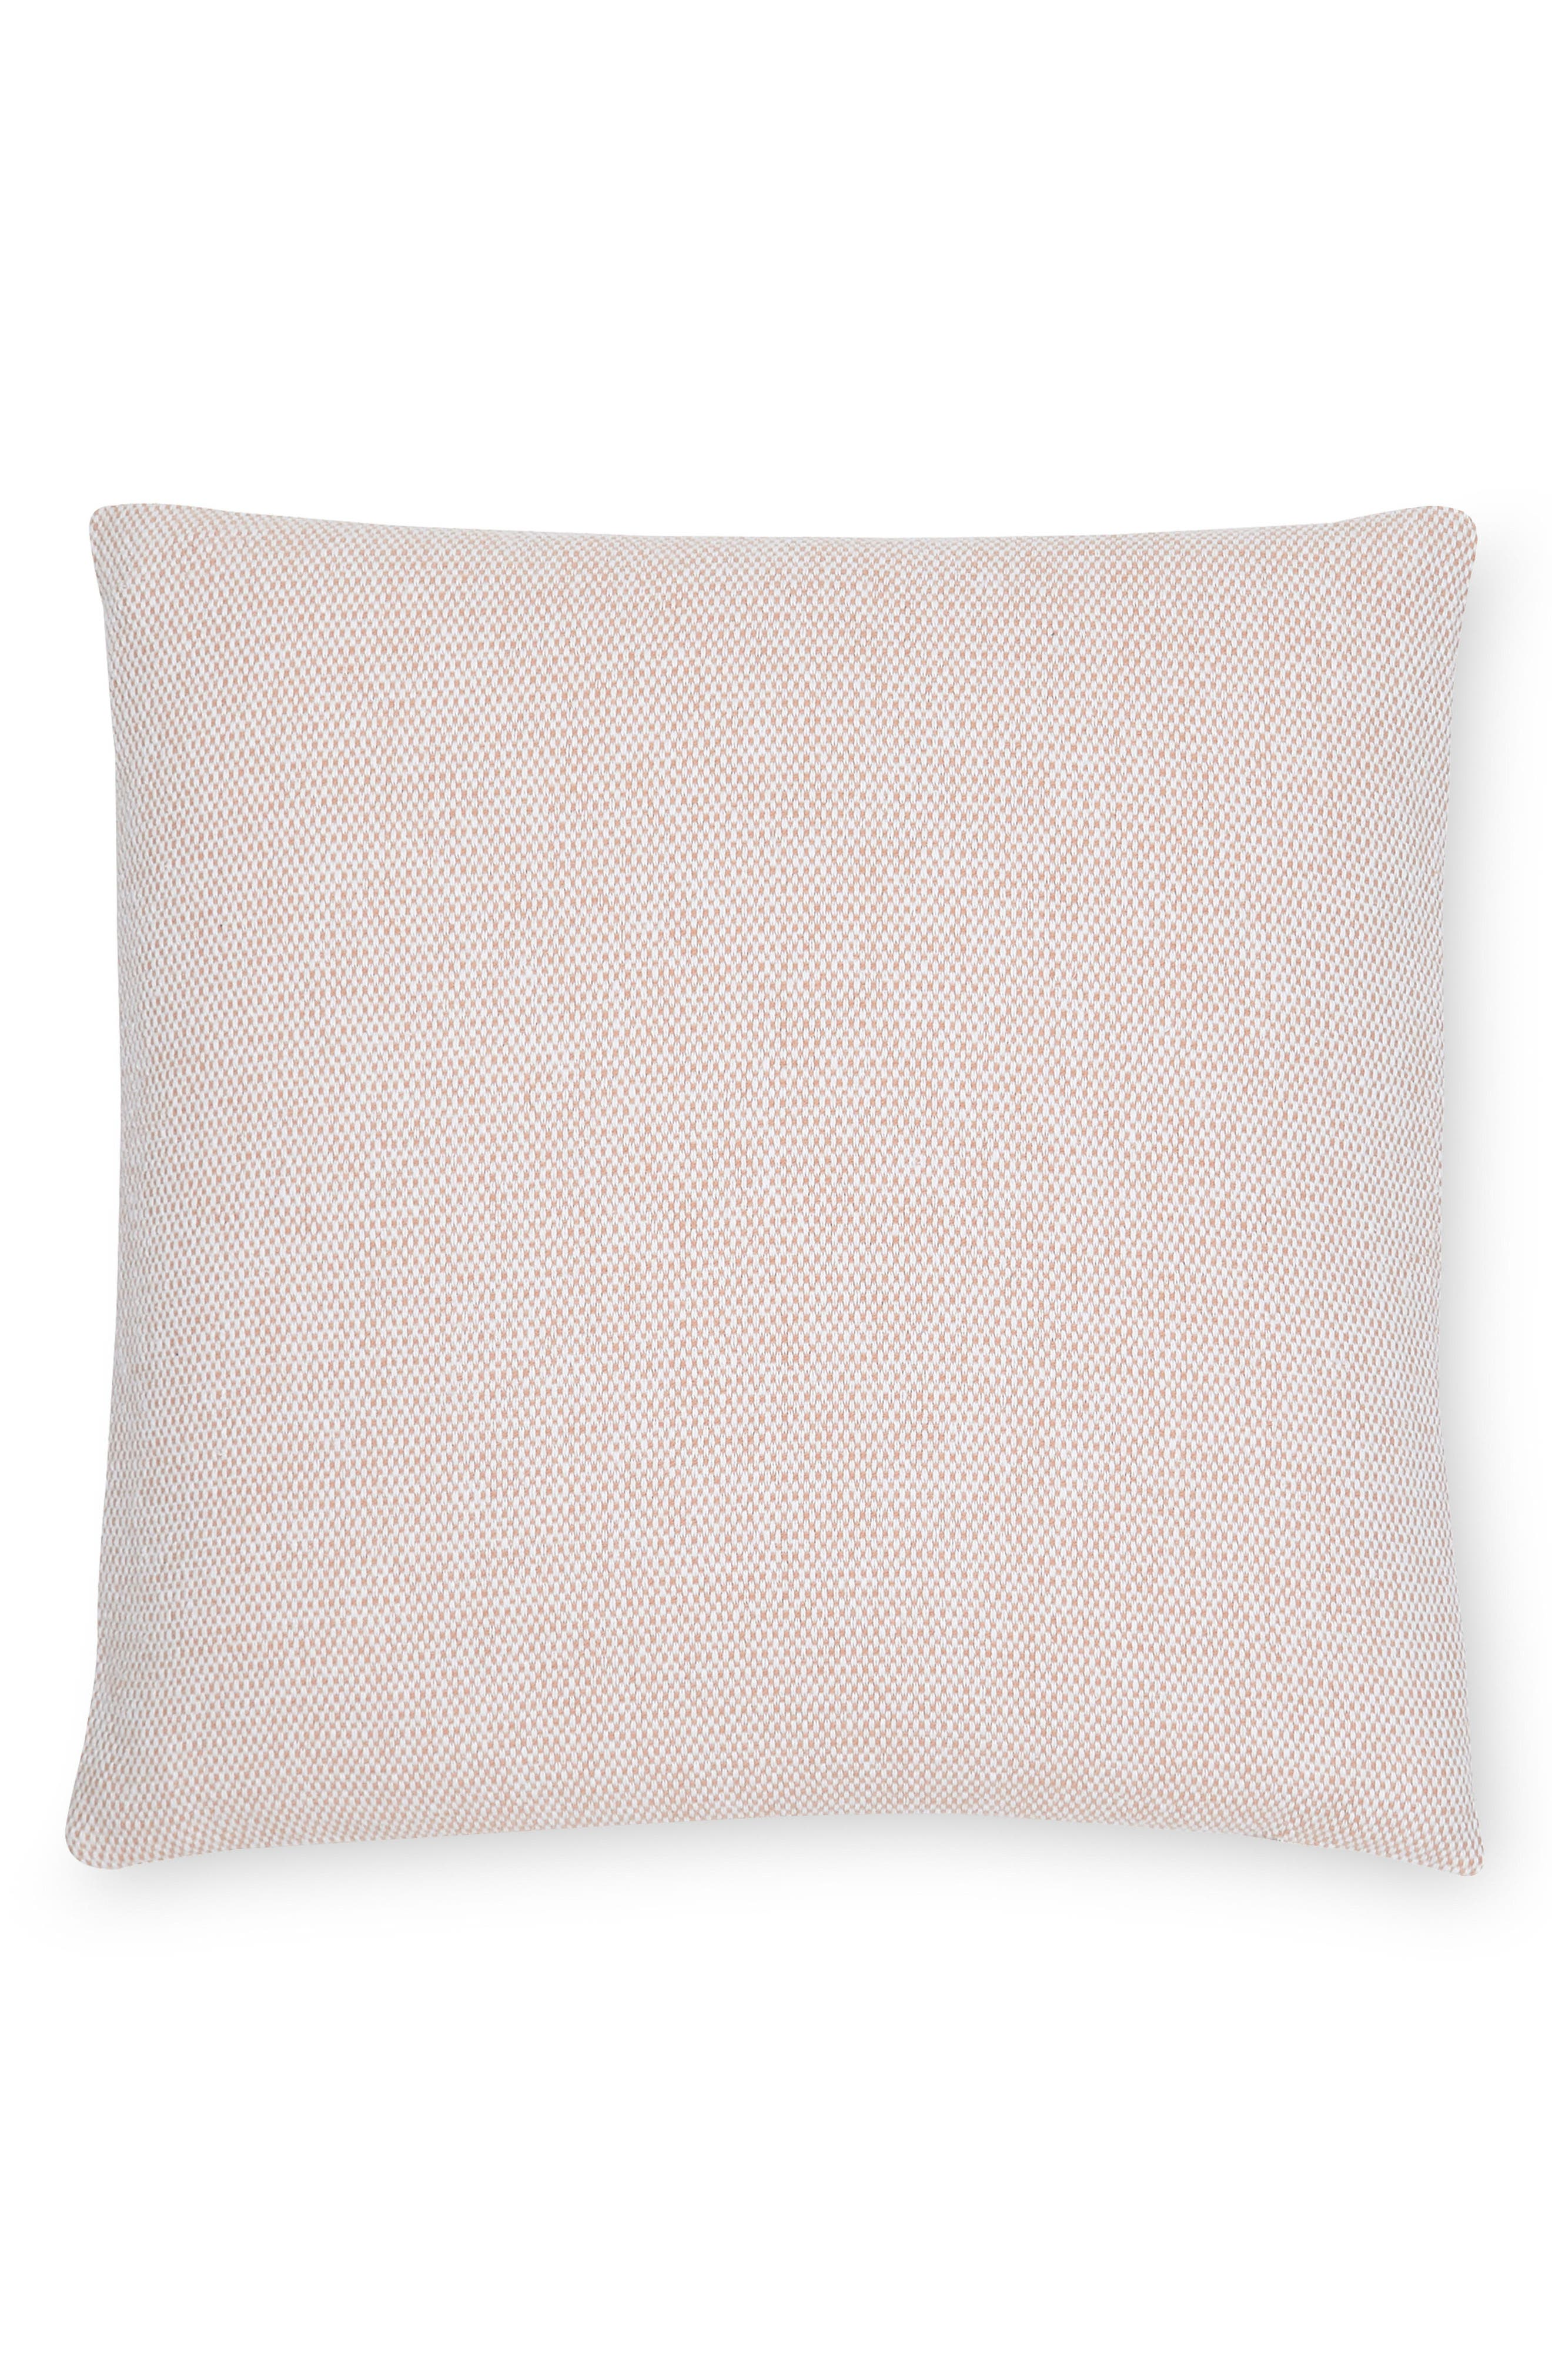 Alternate Image 1 Selected - SFERRA Terzo Accent Pillow